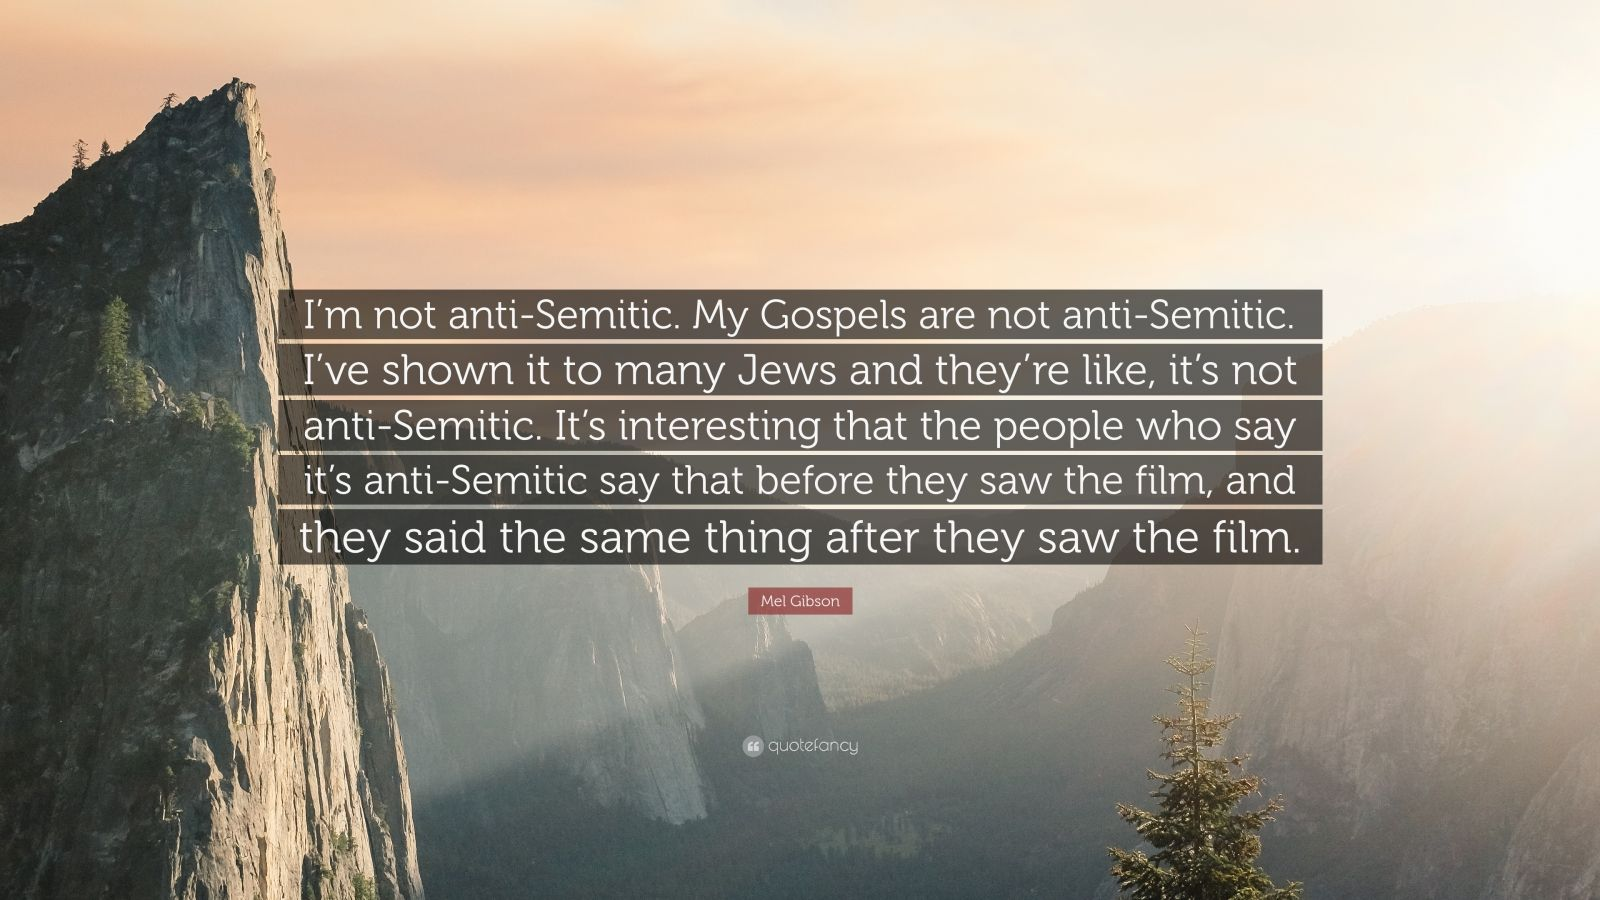 """Mel Gibson Quote: """"I'm not anti-Semitic. My Gospels are not anti-Semitic. I've shown it to many Jews and they're like, it's not anti-Semitic. It's interesting that the people who say it's anti-Semitic say that before they saw the film, and they said the same thing after they saw the film."""""""